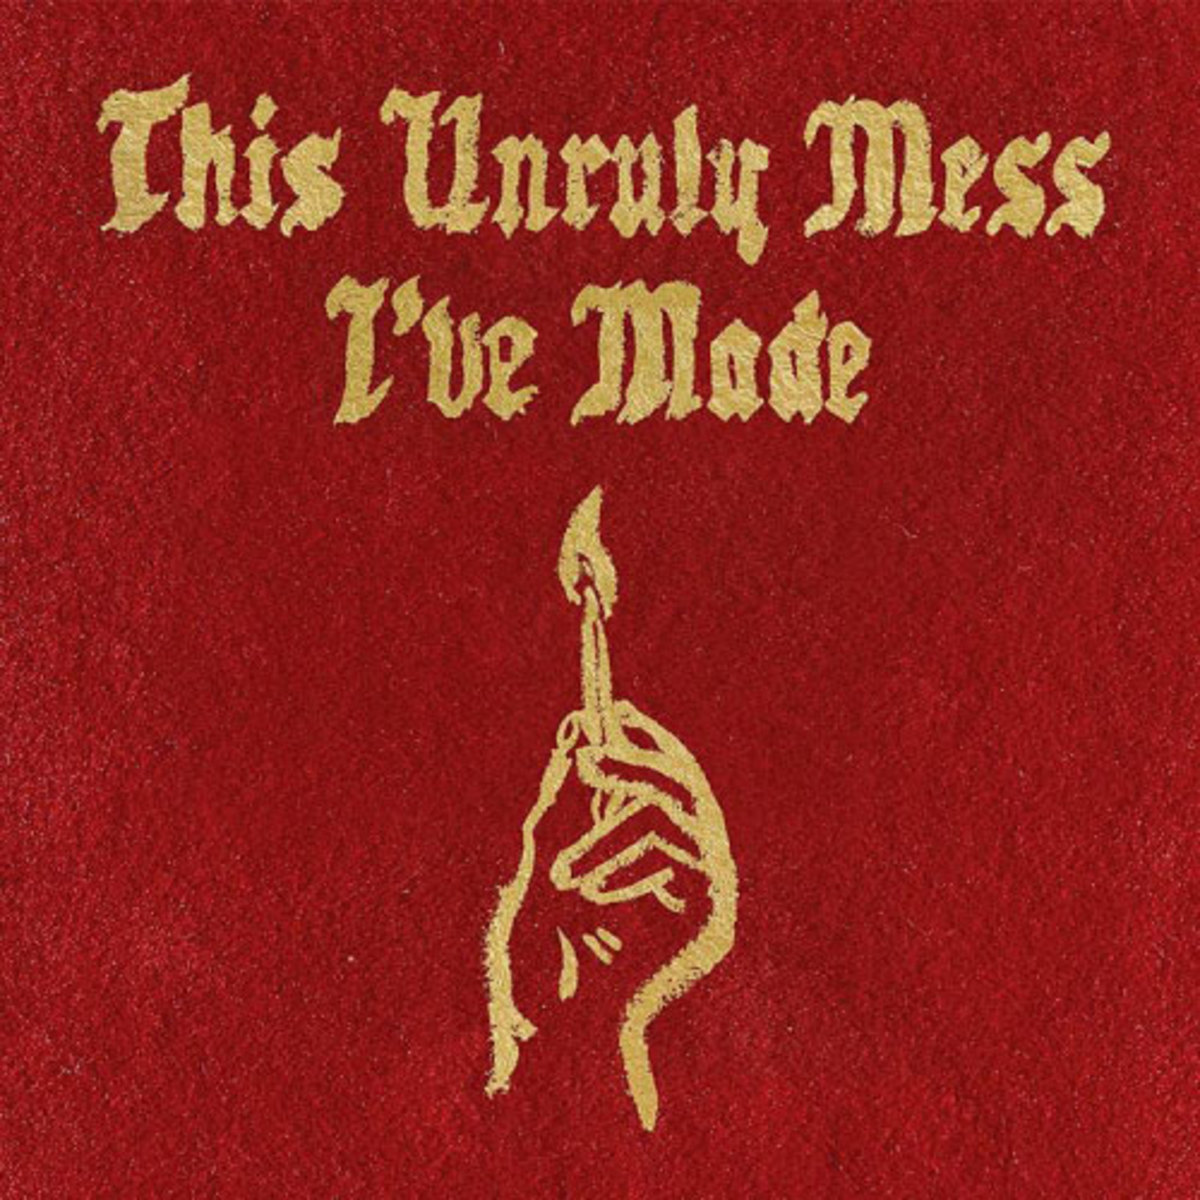 macklemore-ryan-lewis-this-unruly-mess-ive-made.jpg